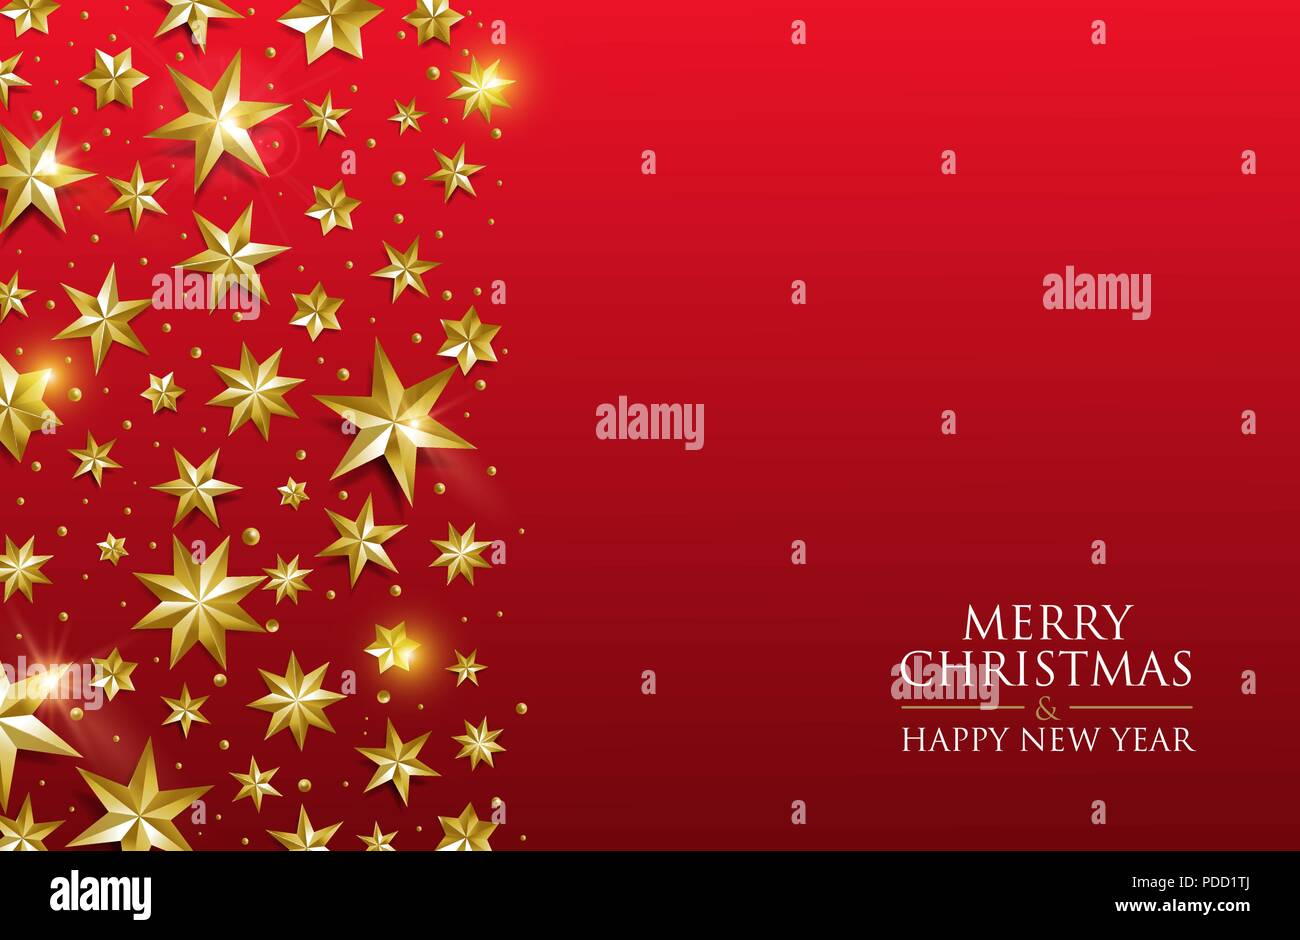 merry christmas and happy new year luxury gold star decoration design on festive red background ideal for greeting card or elegant holiday party invi